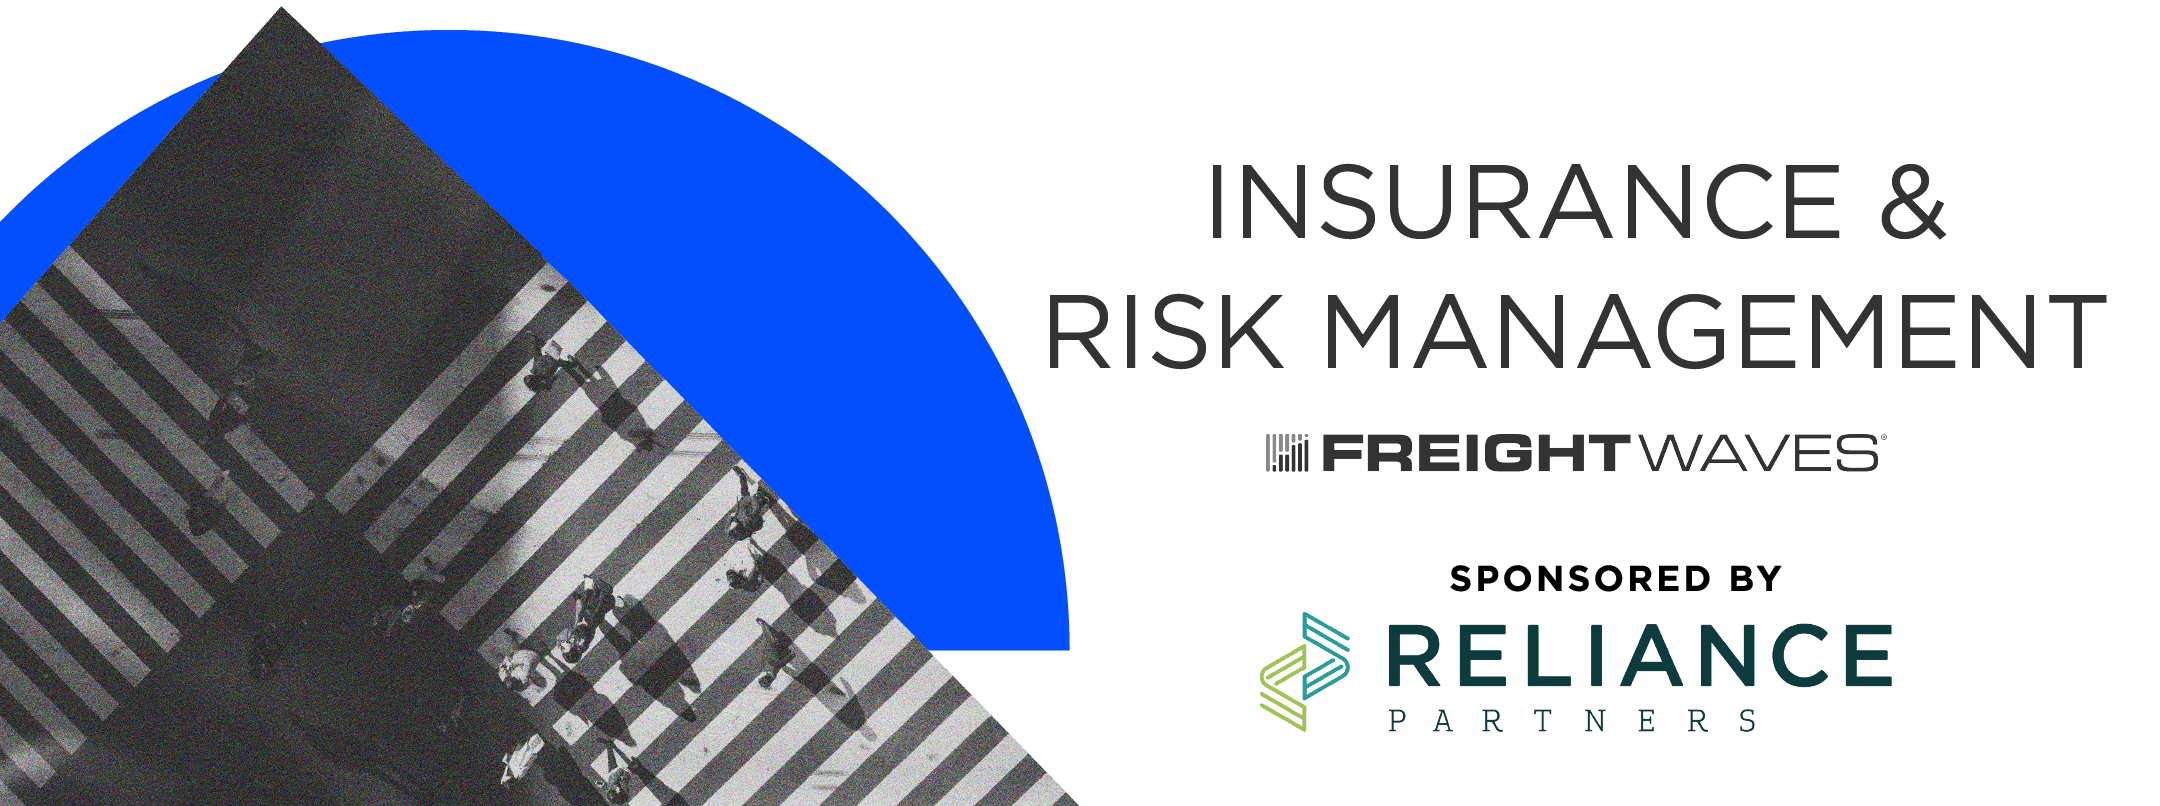 Insurance & Risk Management Sponsored by Reliance Partners